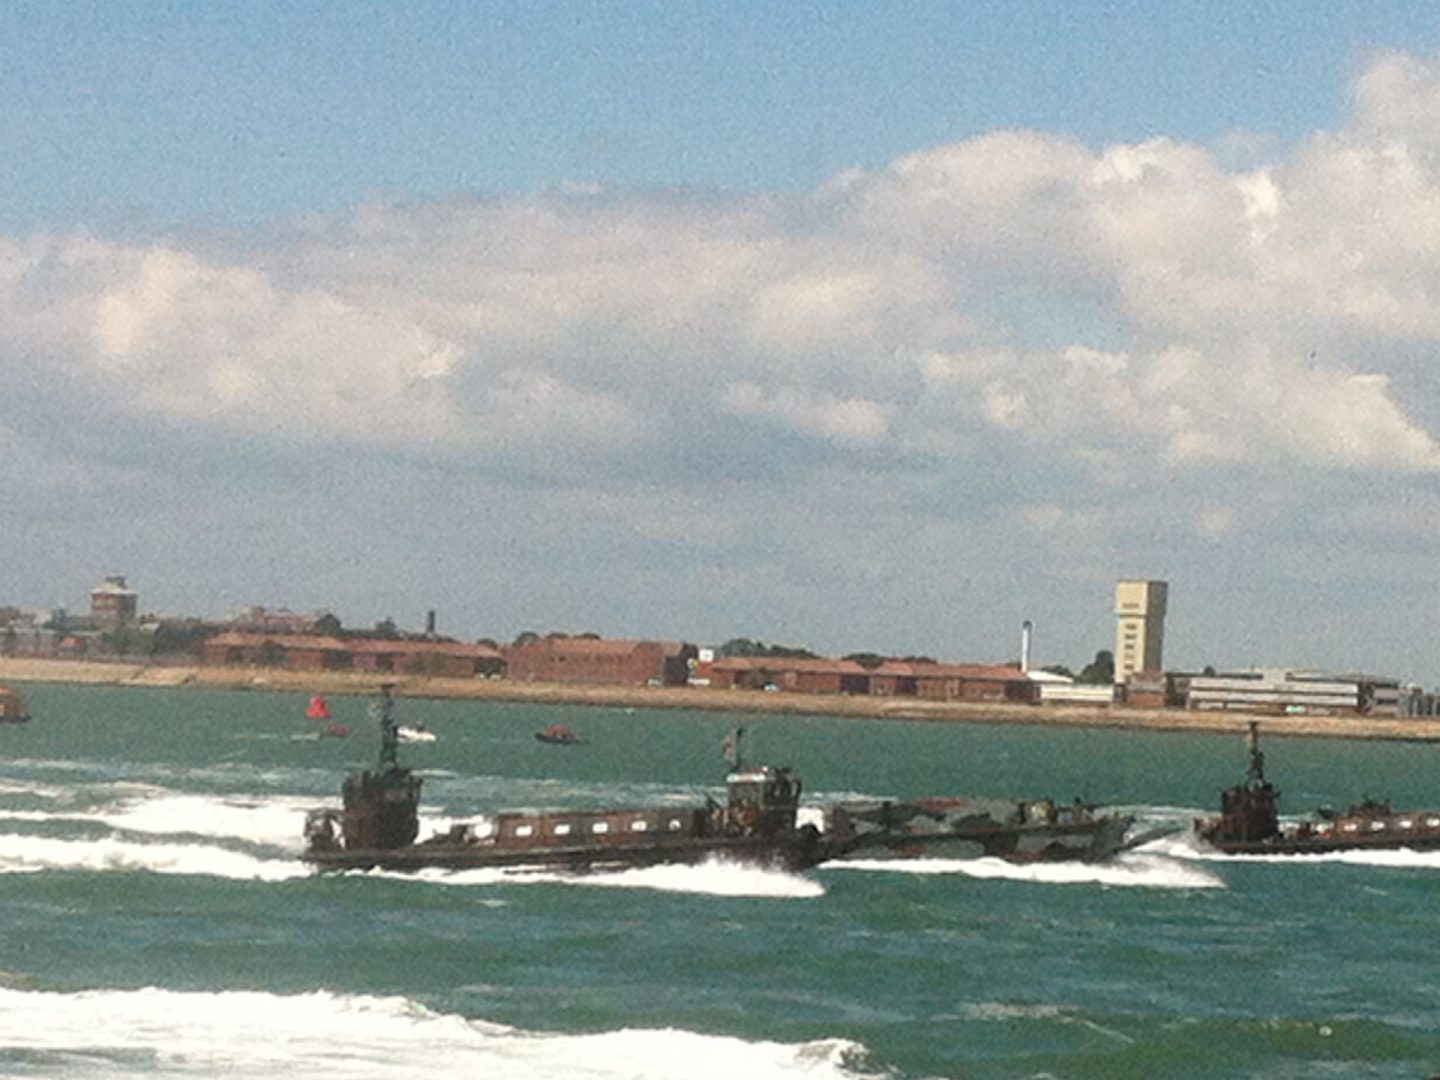 Storming the beaches of Portsmouth